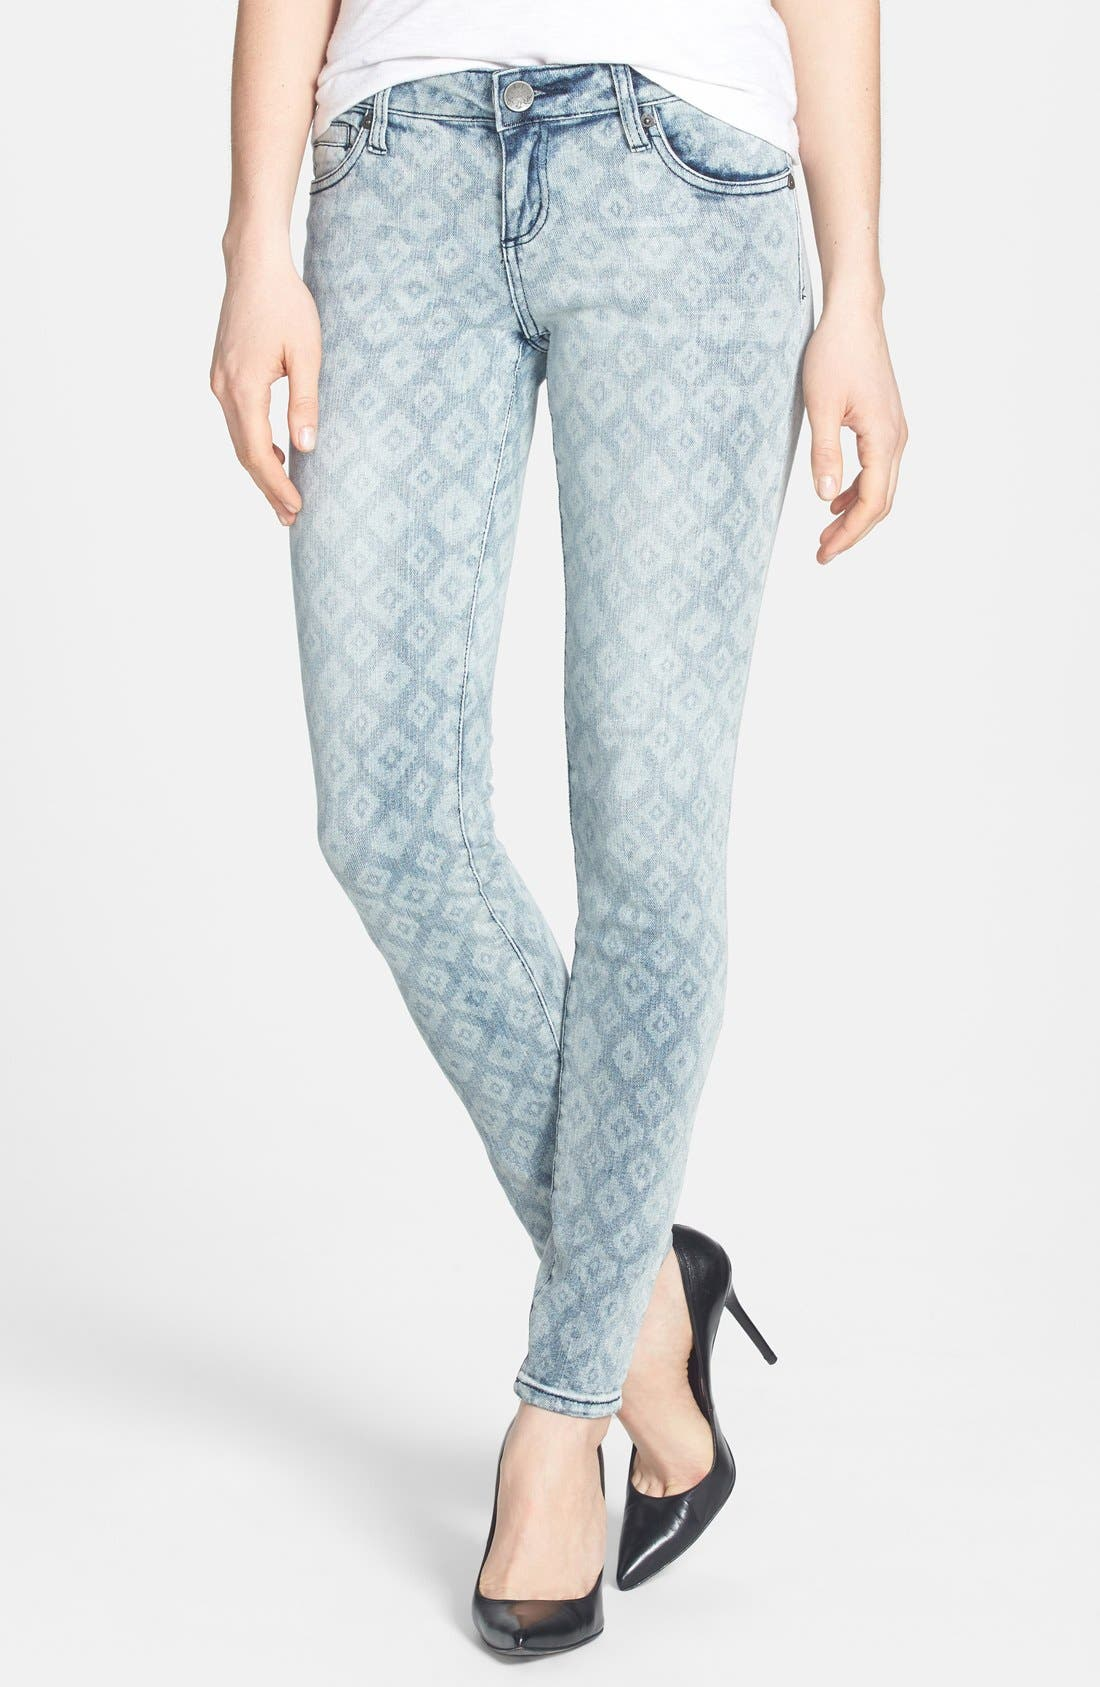 Main Image - KUT from the Kloth 'Mia' Print Stretch Skinny Jeans (Young)